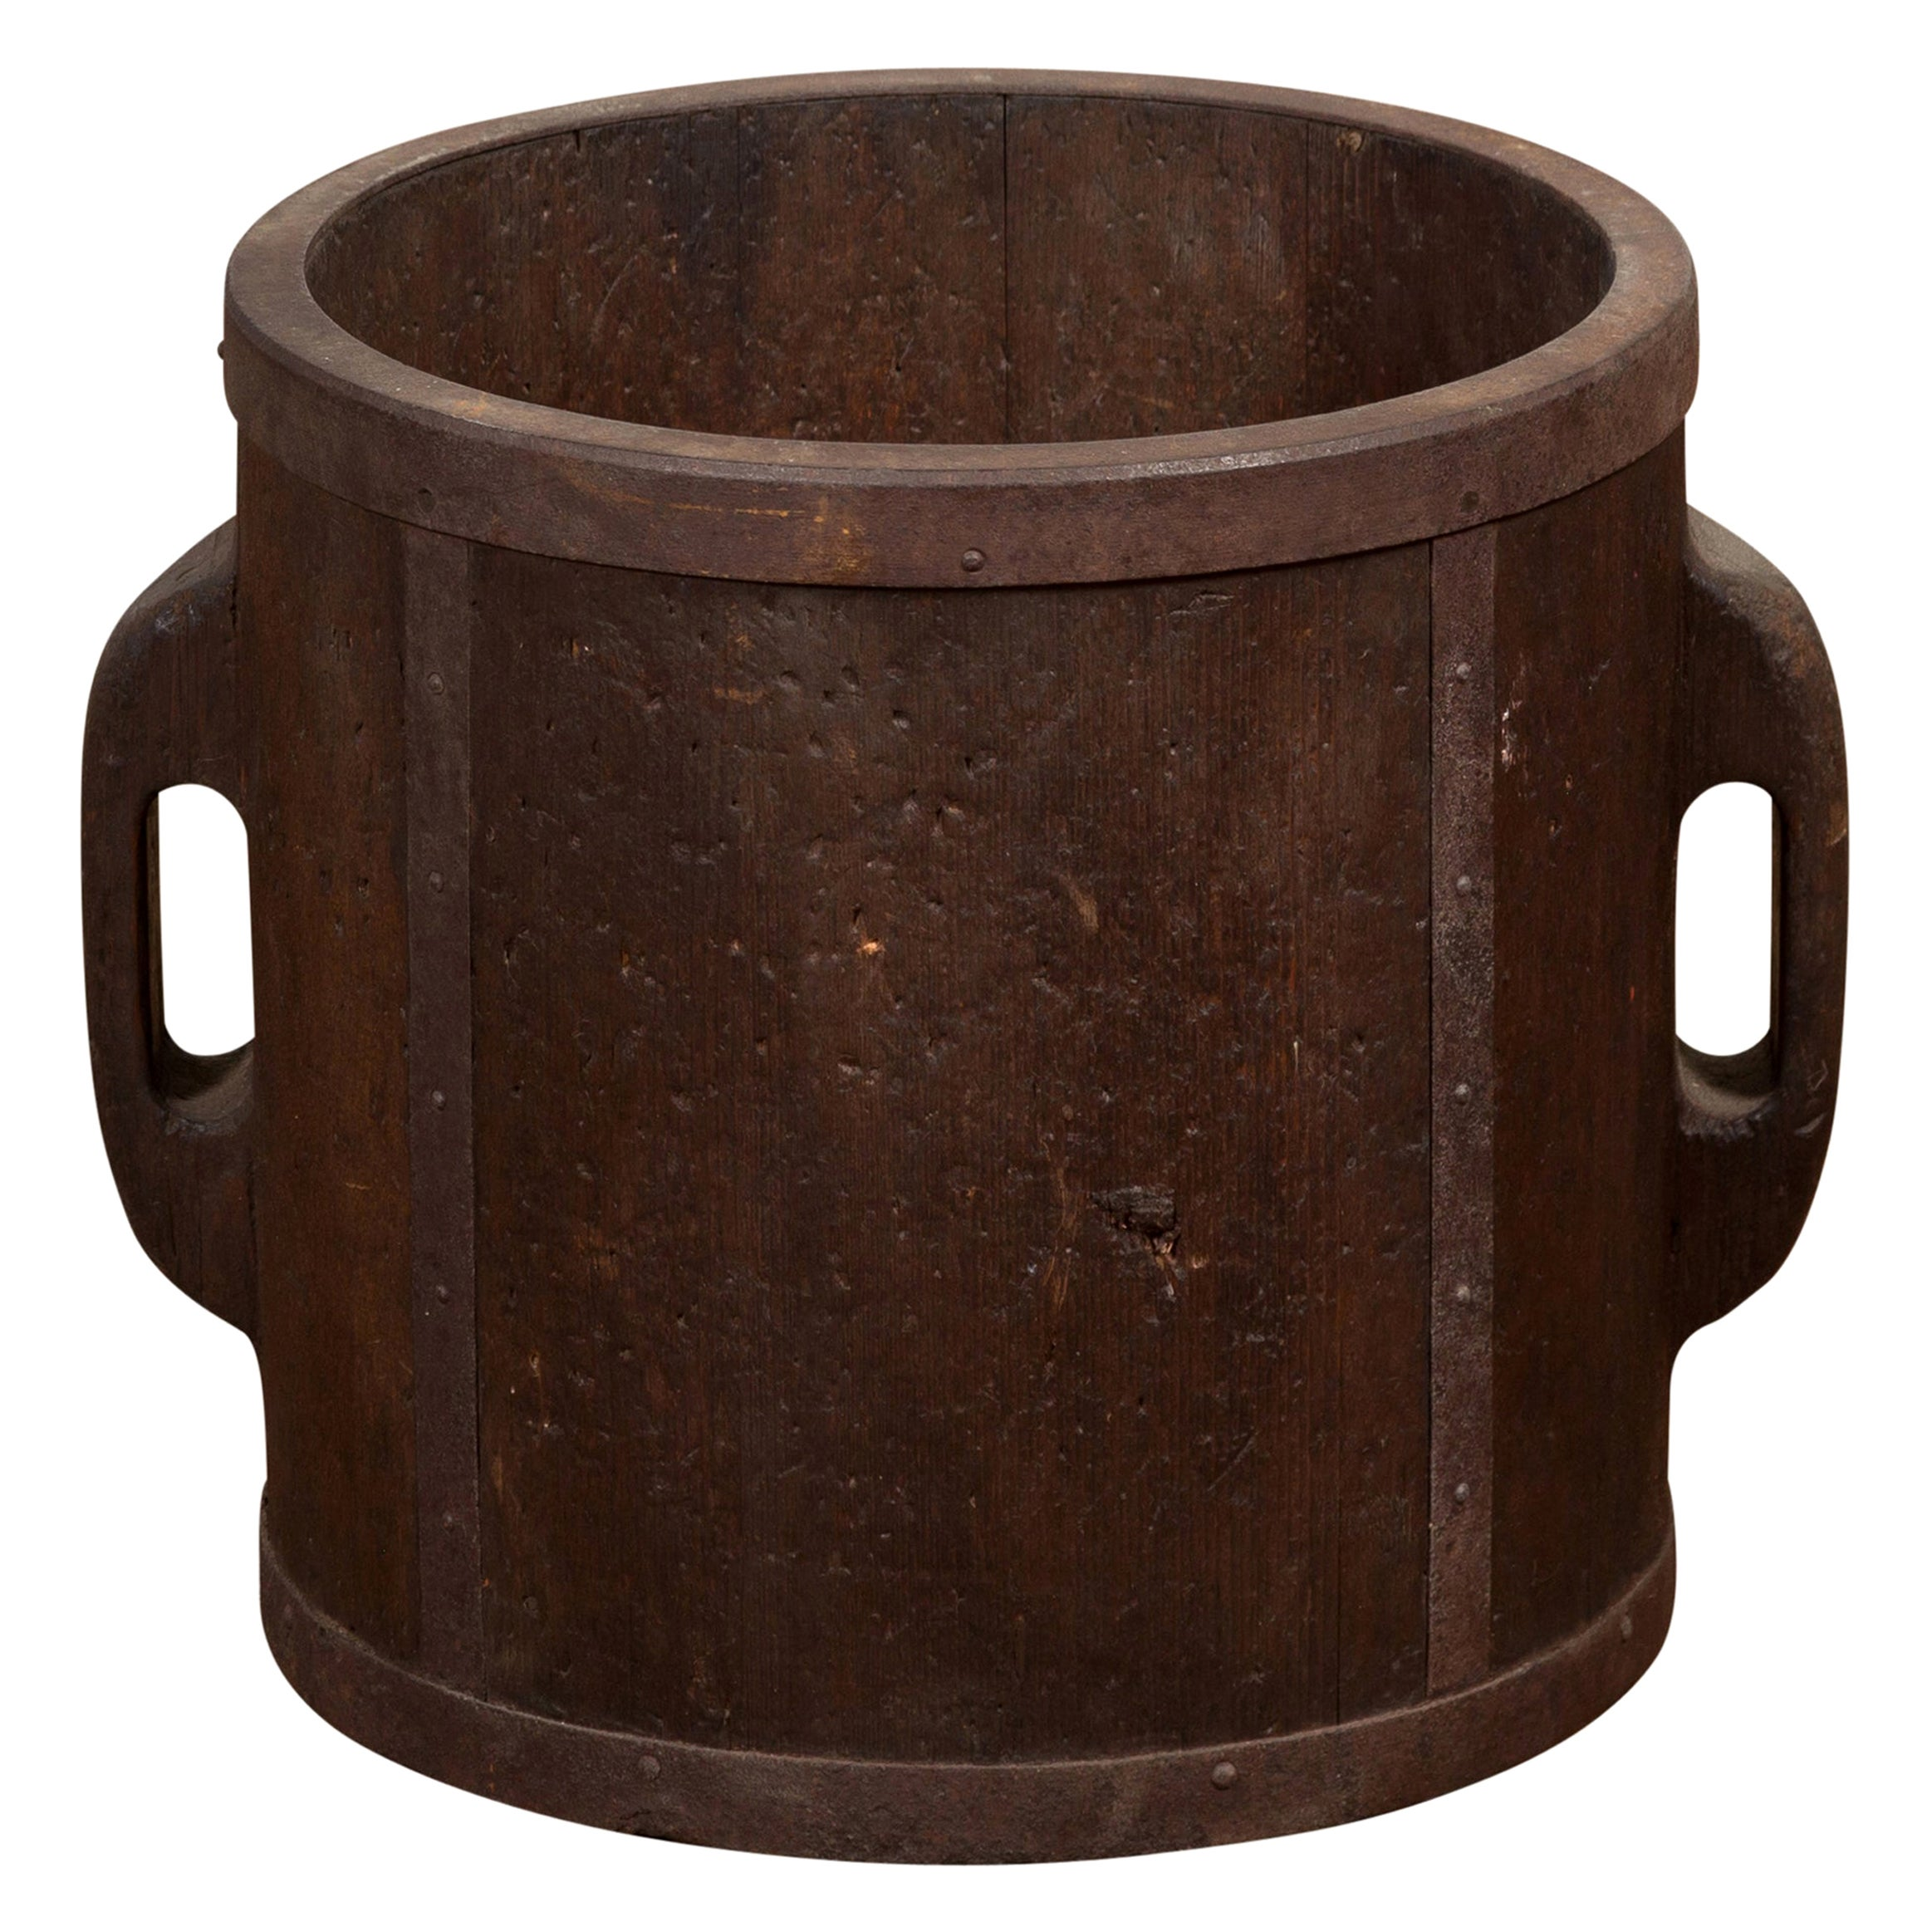 Antique Chinese Brown Grain Measuring Cup with Metal Braces and Lateral Handles